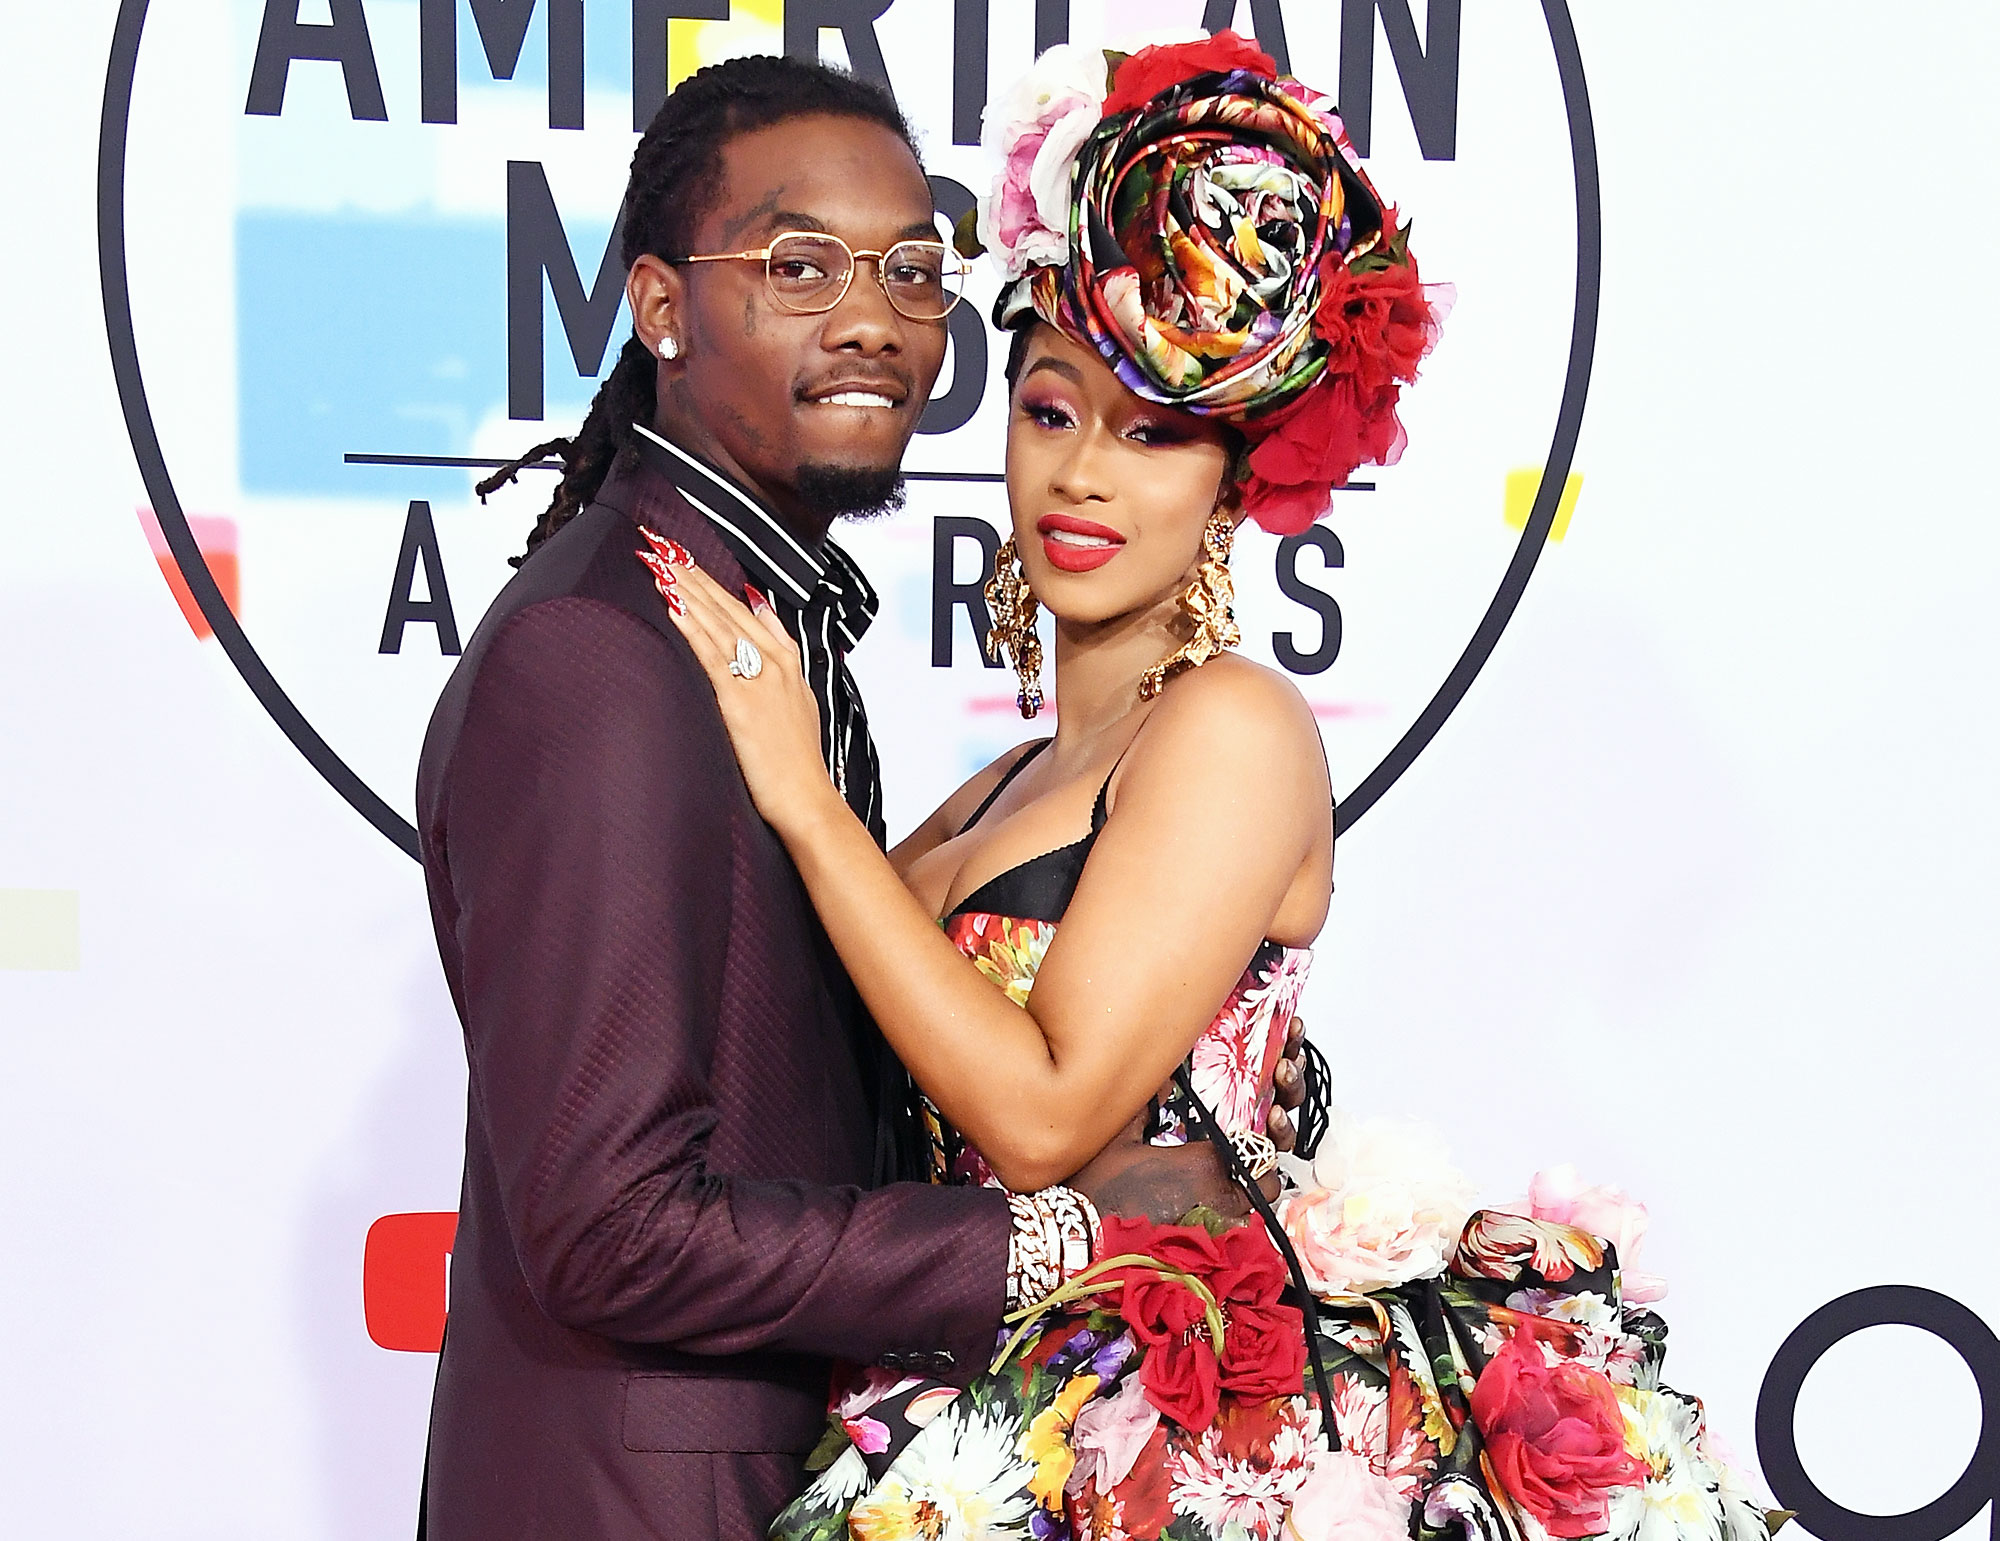 Why Offset Changed Album Cover After Cardi B Shared Kulture Photo